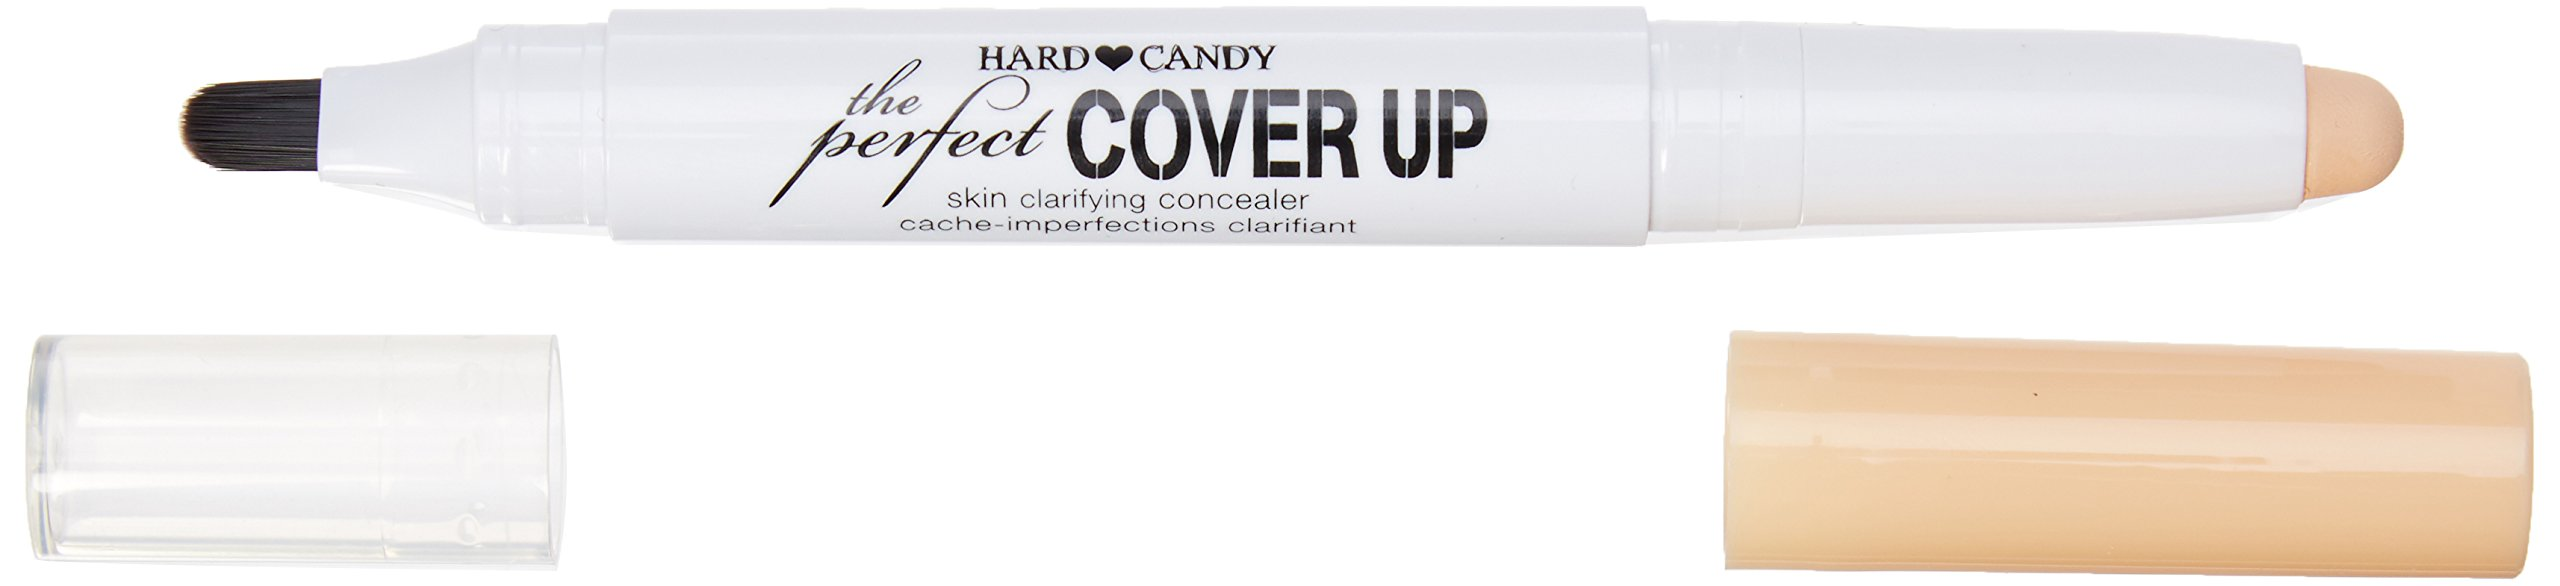 Hard Candy The Perfect Cover Up Skin Clarifying Concealer #508 Light